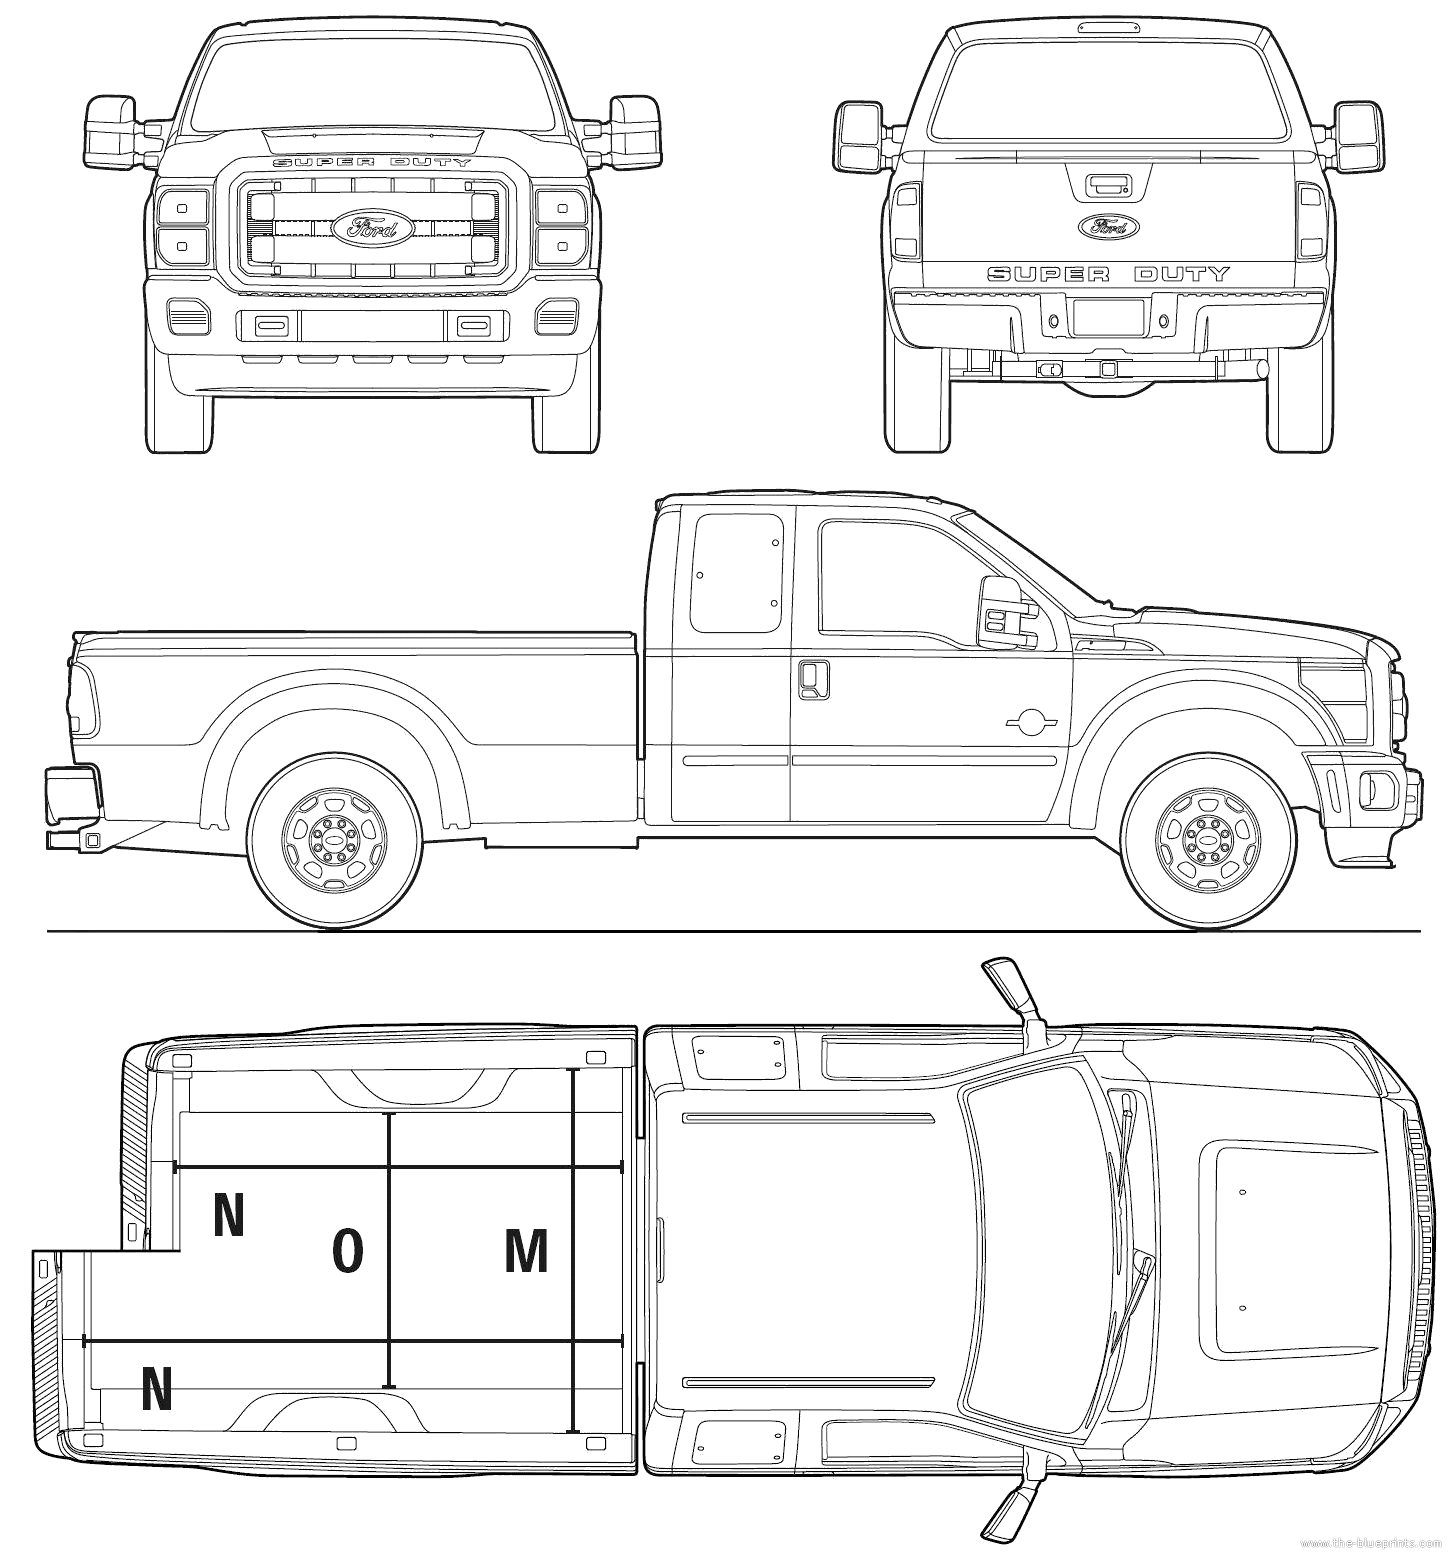 Ford Super Duty Extended Cab Pickup Truck Blueprints